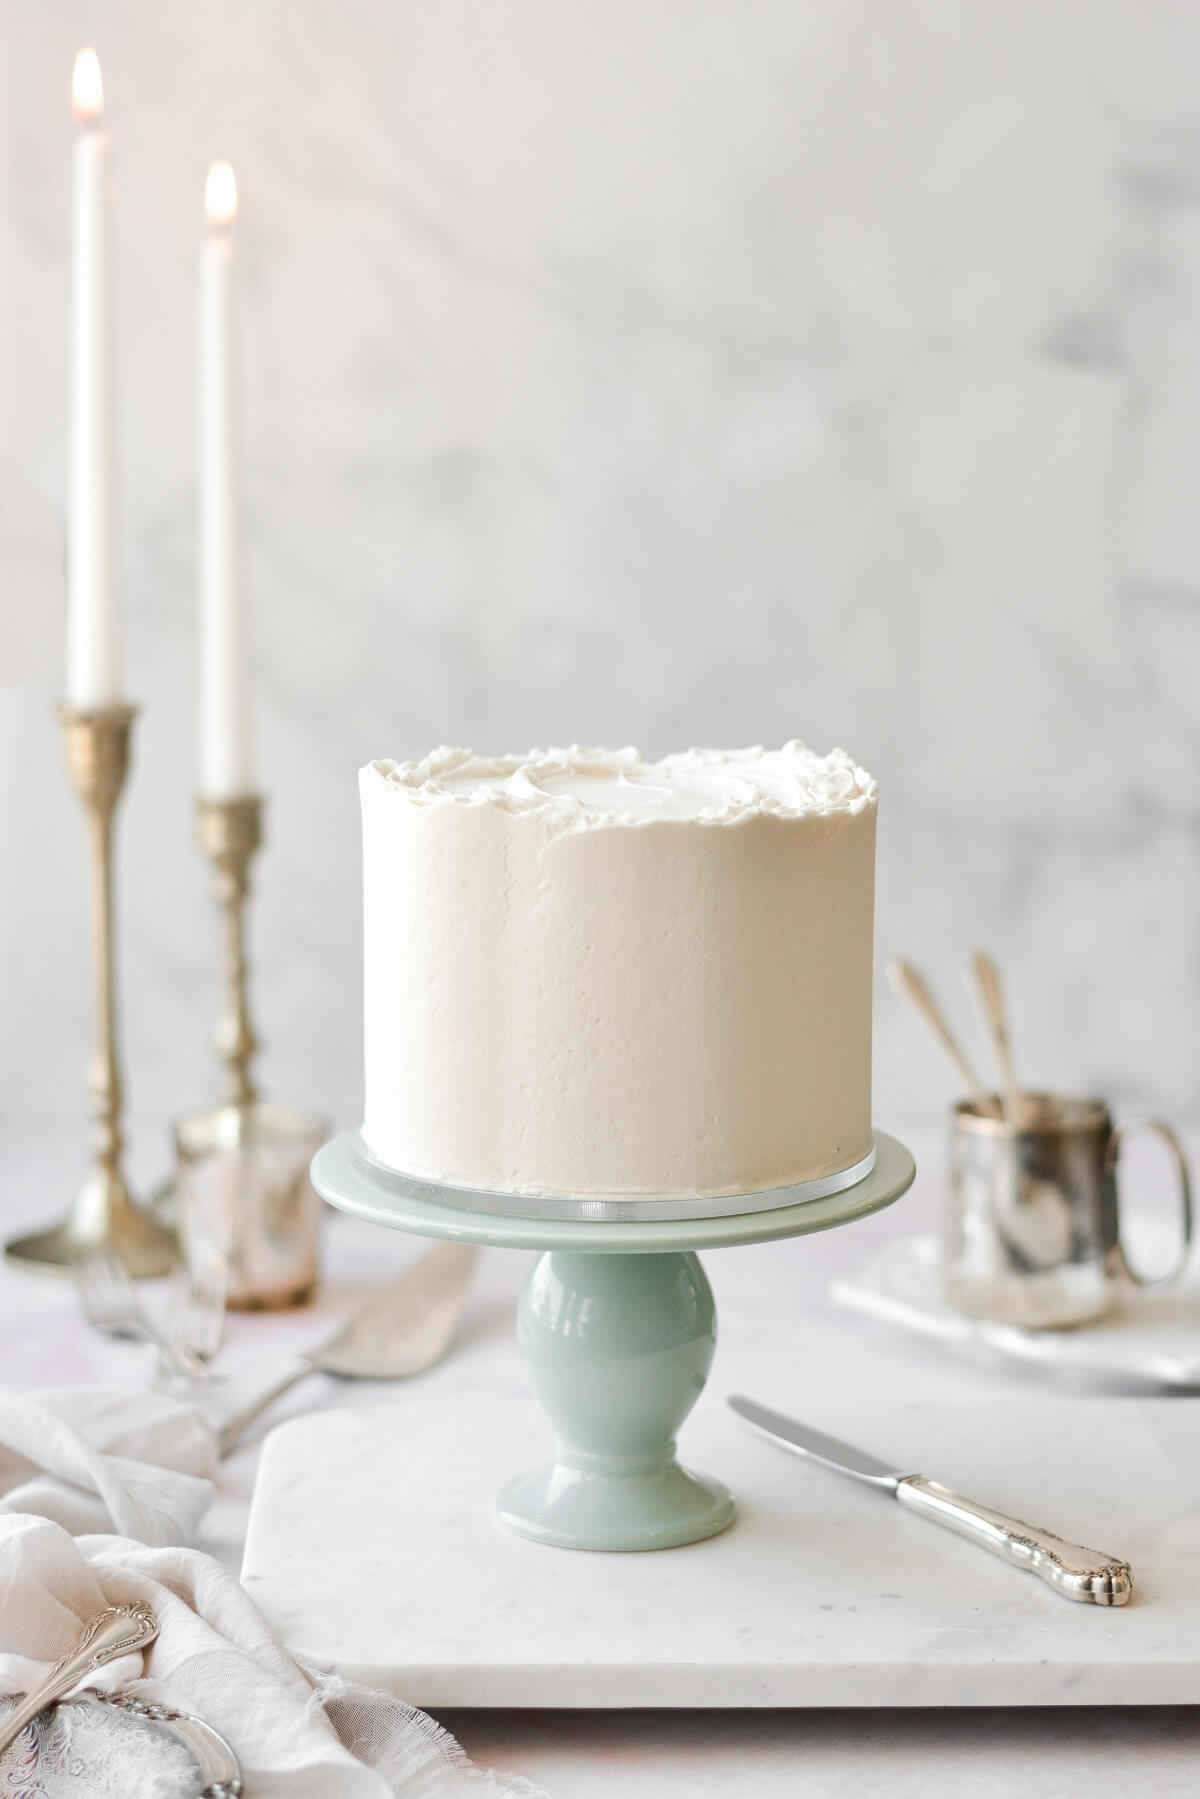 White velvet cake on a sage green cake stand, with taper candles in the background.